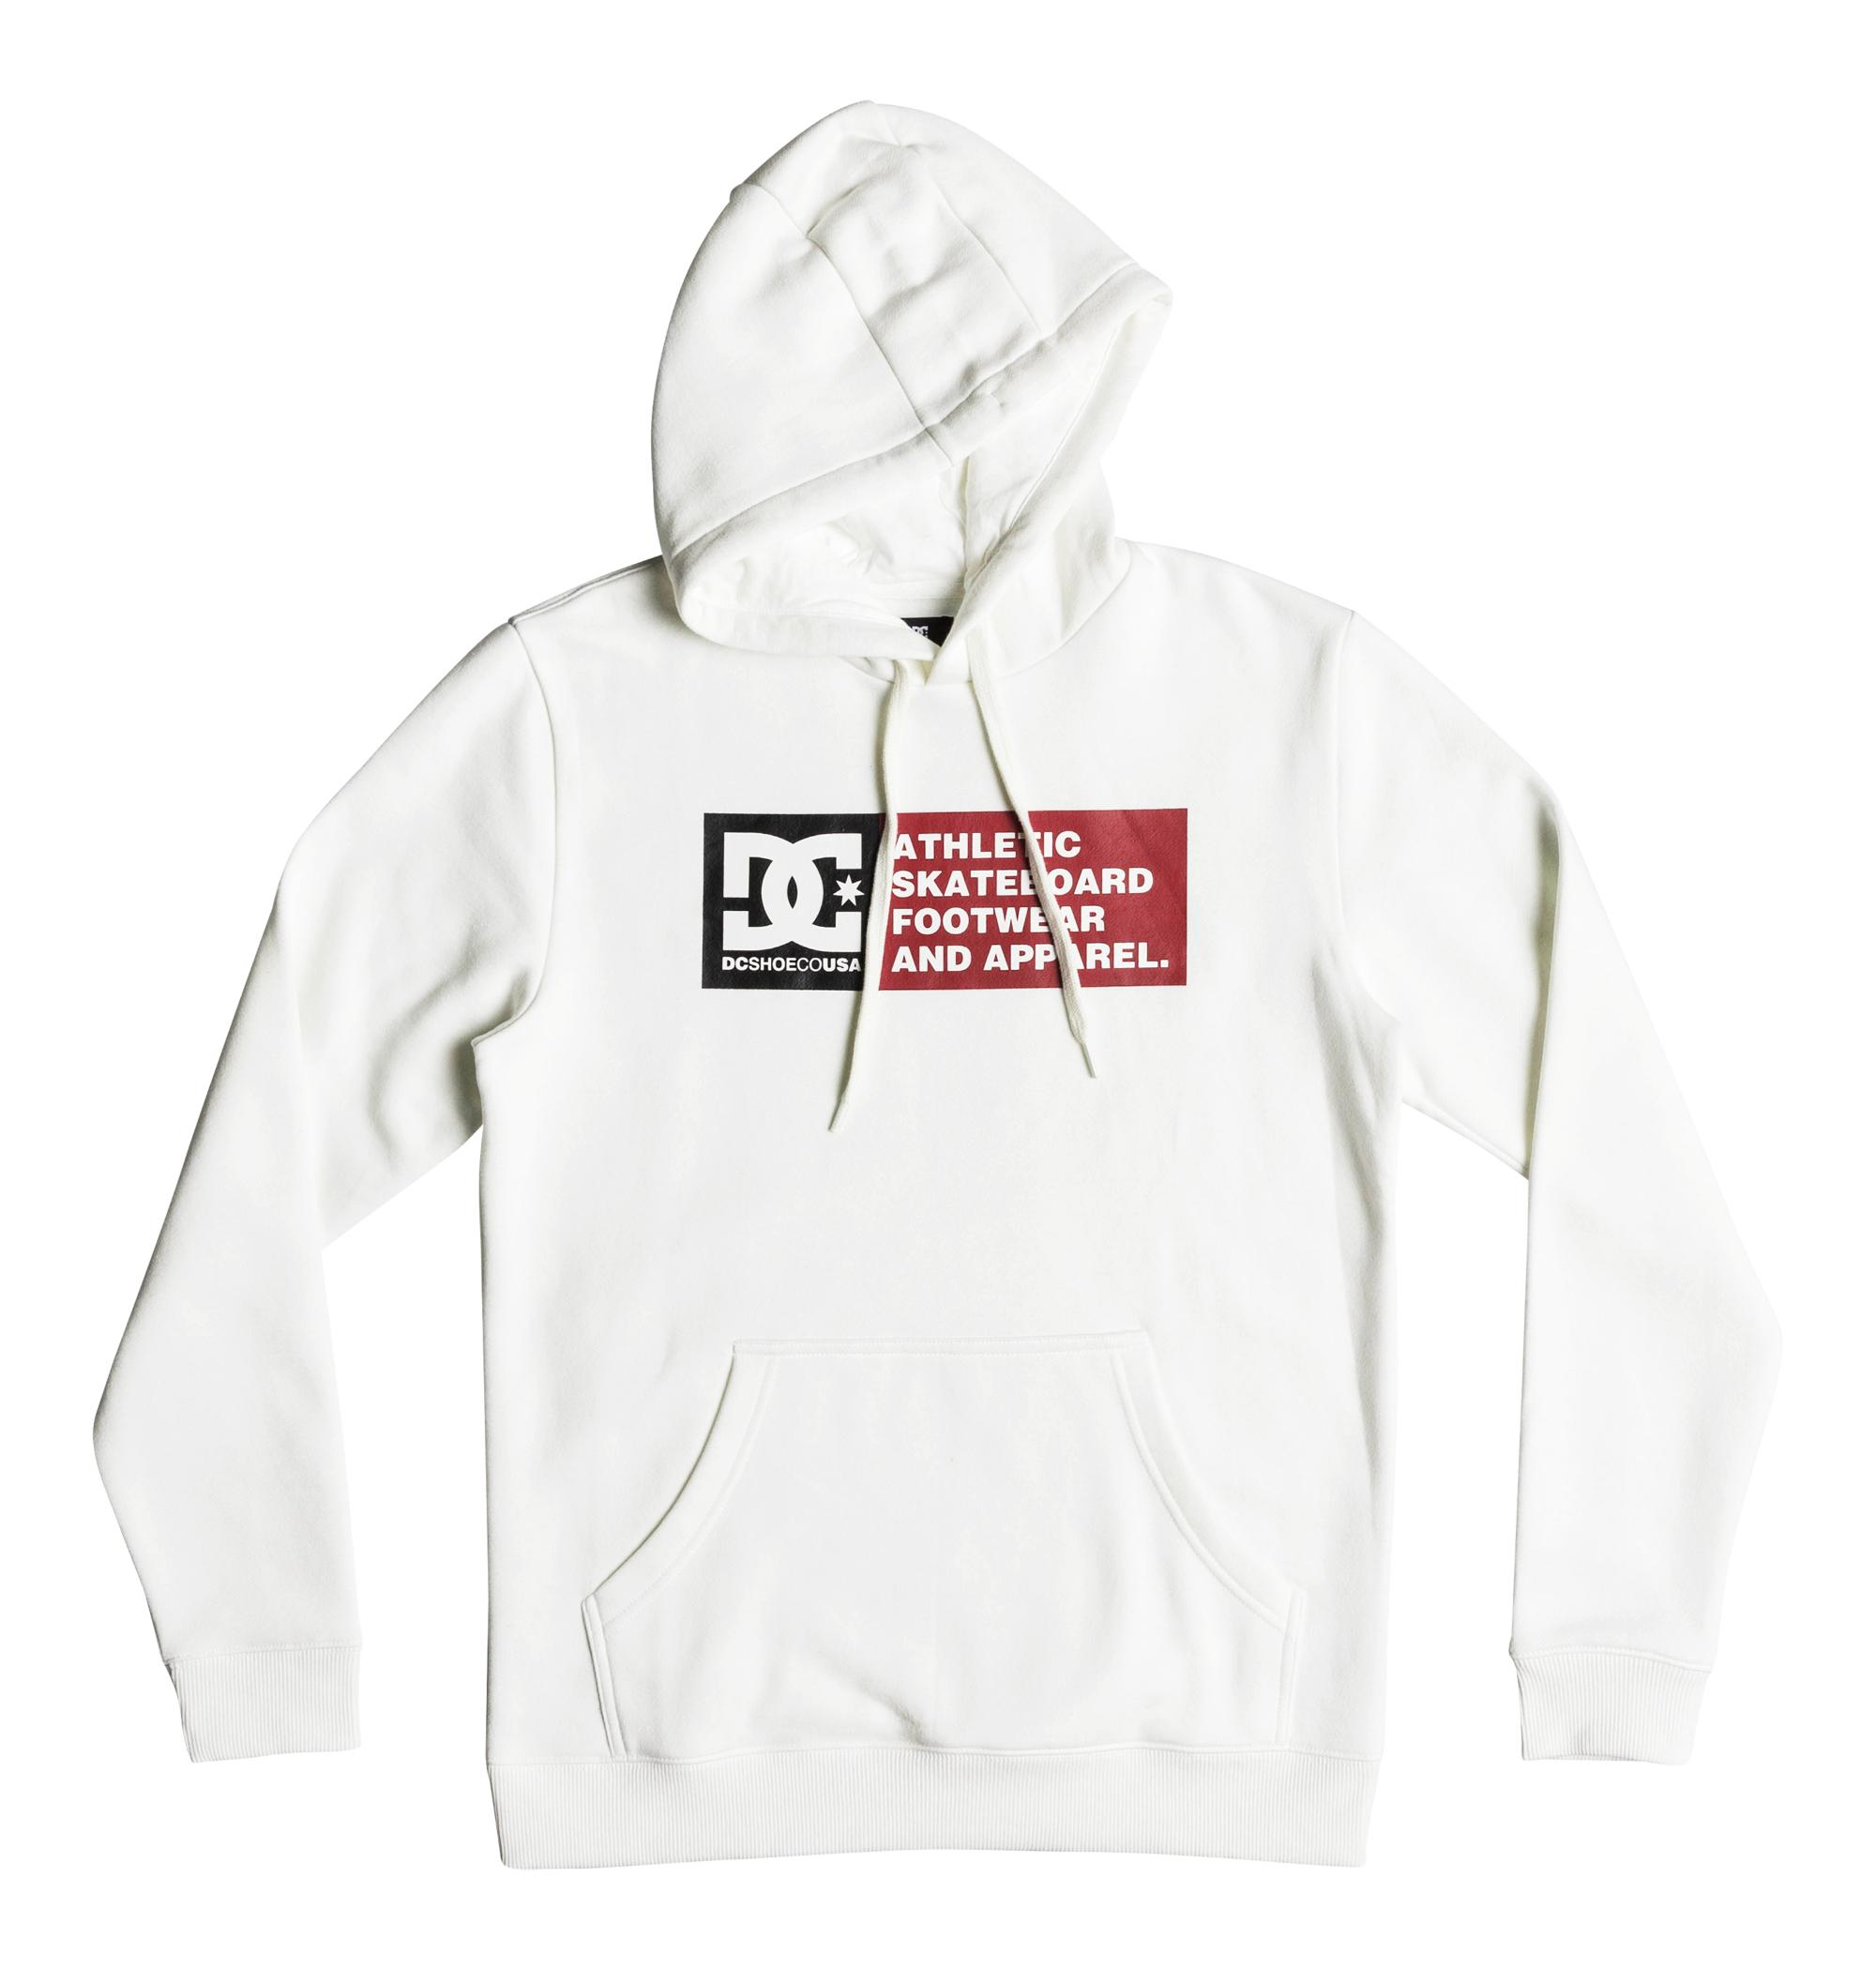 Sudadera Dc Shoes modelo Vertical Zone en color blanco para hombre-h